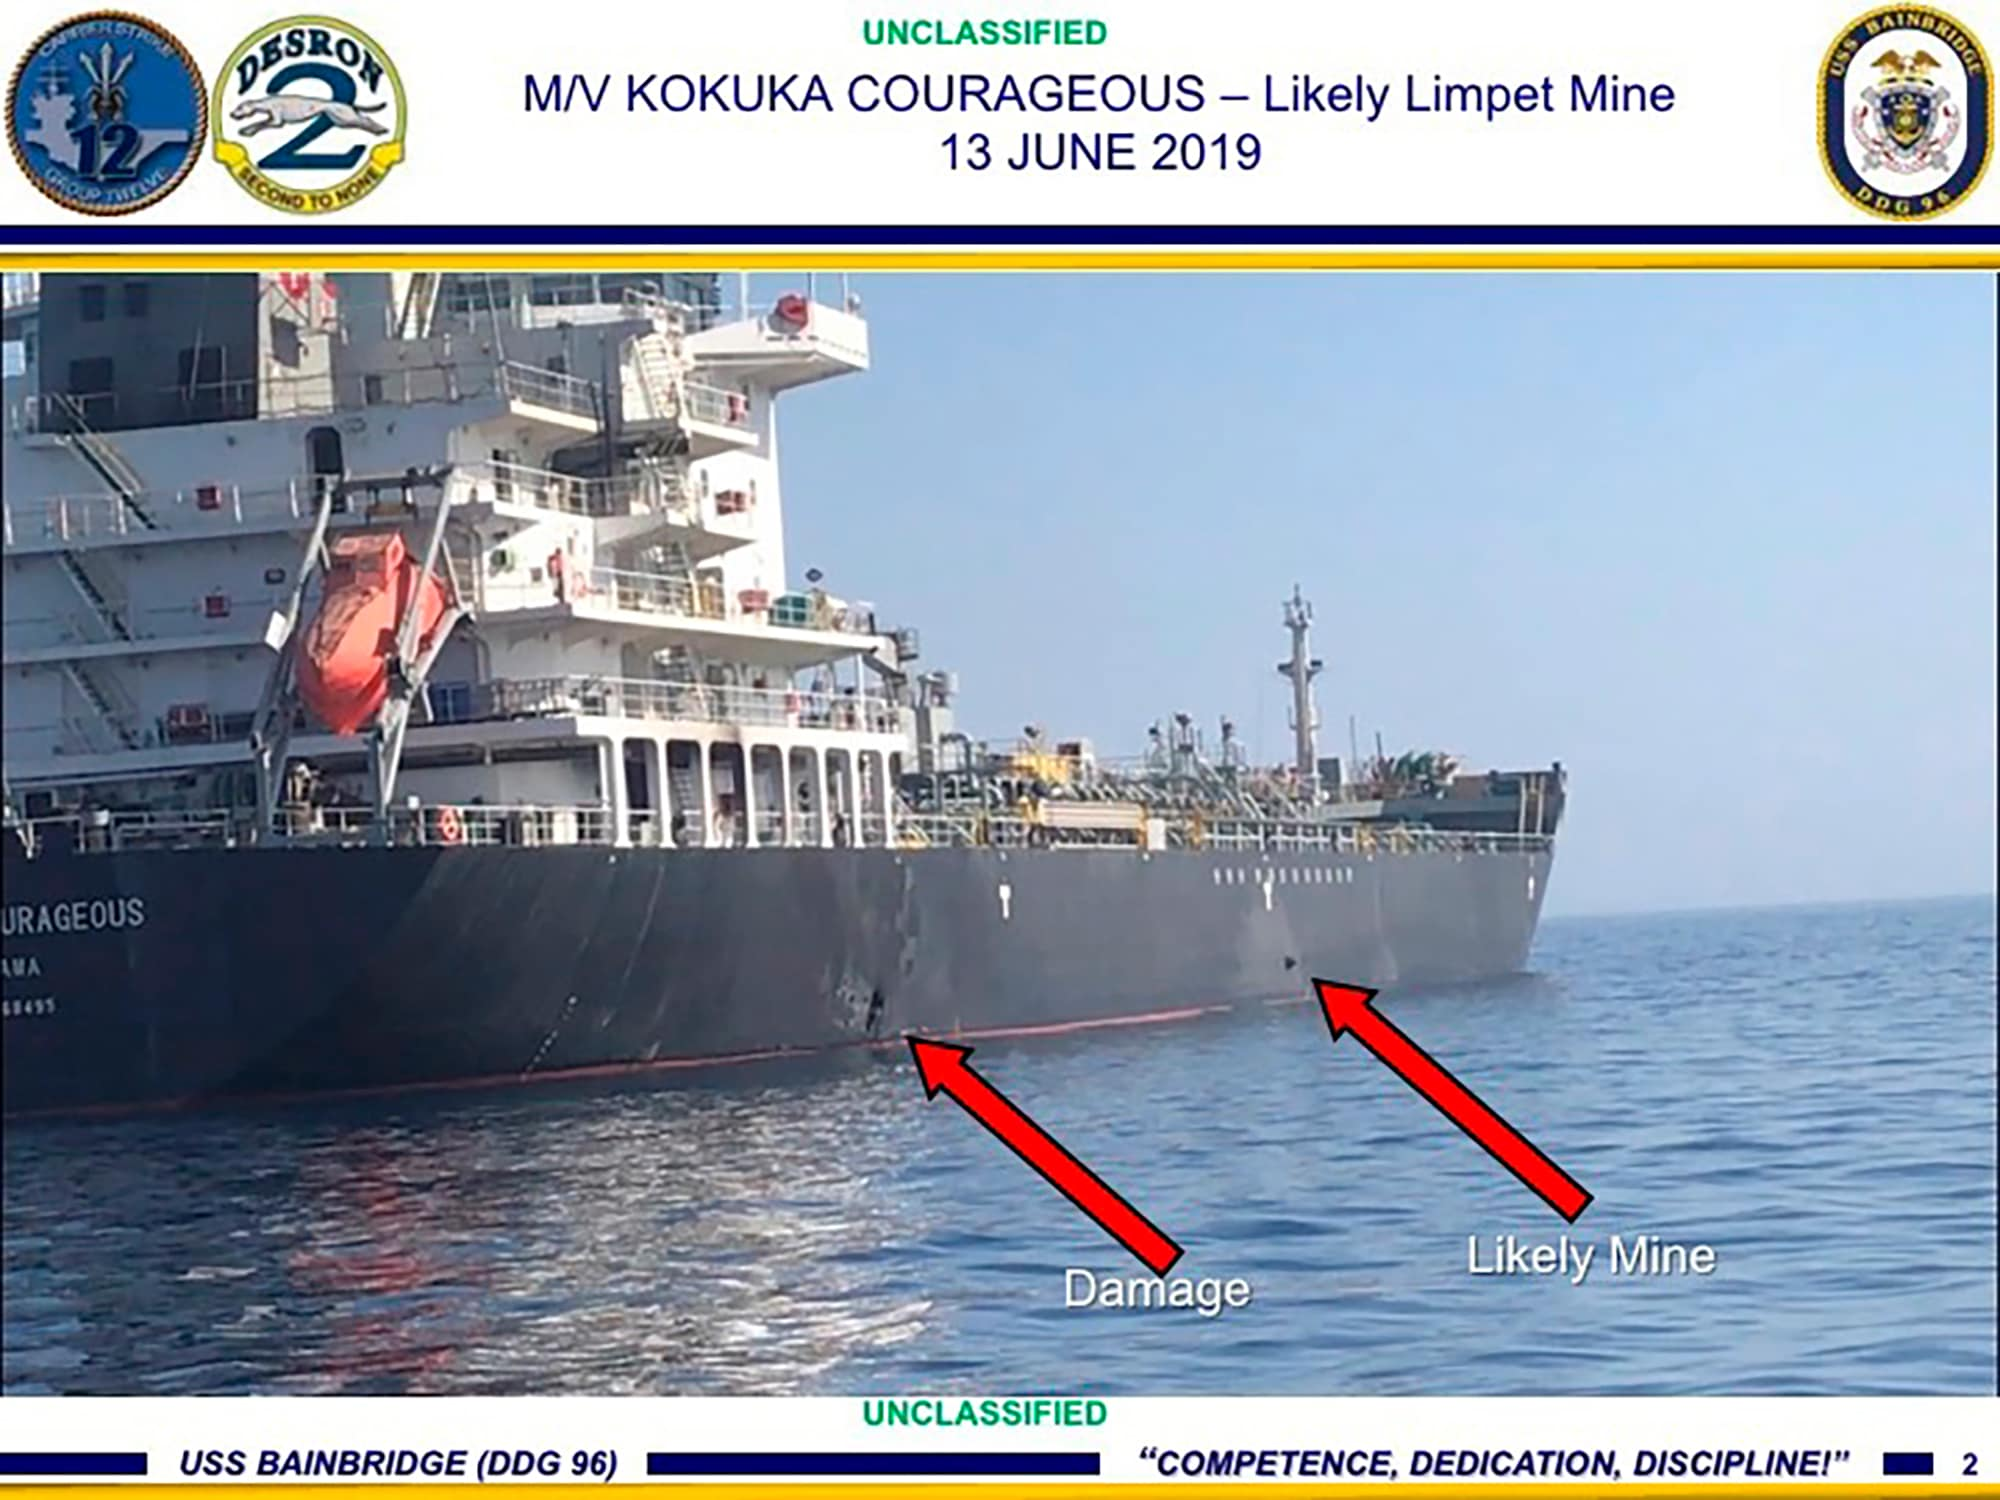 This June 13, 2019, image released by the US military's Central Command, shows damage and a suspected mine on the Kokuka Courageous in the Gulf of Oman near the coast of Iran. (US Central Command via AP)